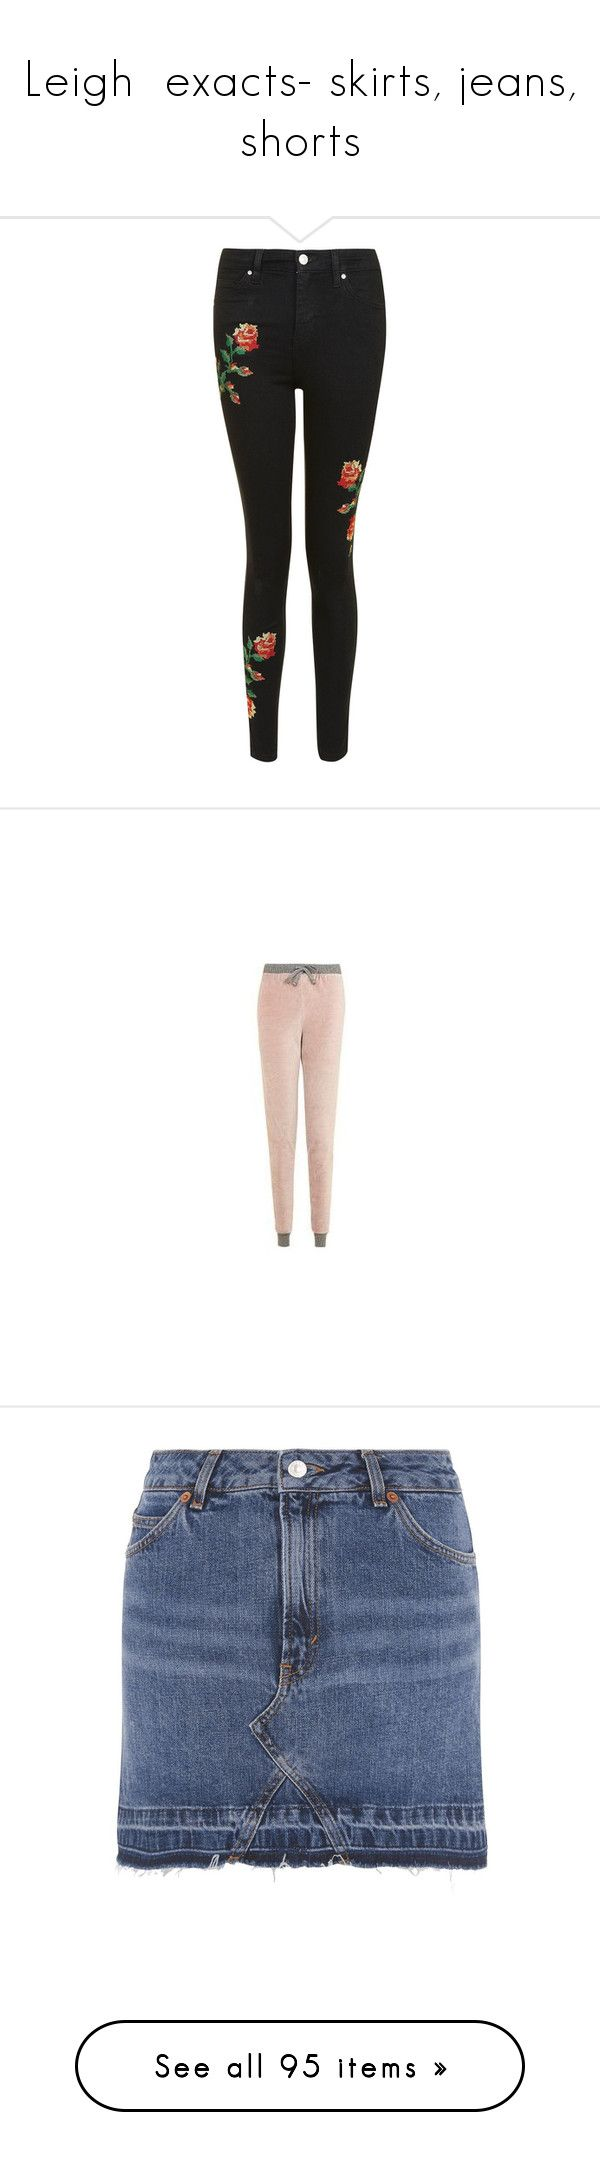 """Leigh  exacts- skirts, jeans, shorts"" by little-mix-are-babes ❤ liked on Polyvore featuring jeans, black, high waisted jeans, button fly jeans, denim skinny jeans, skinny leg jeans, embroidered jeans, activewear, activewear pants and pink sportswear"